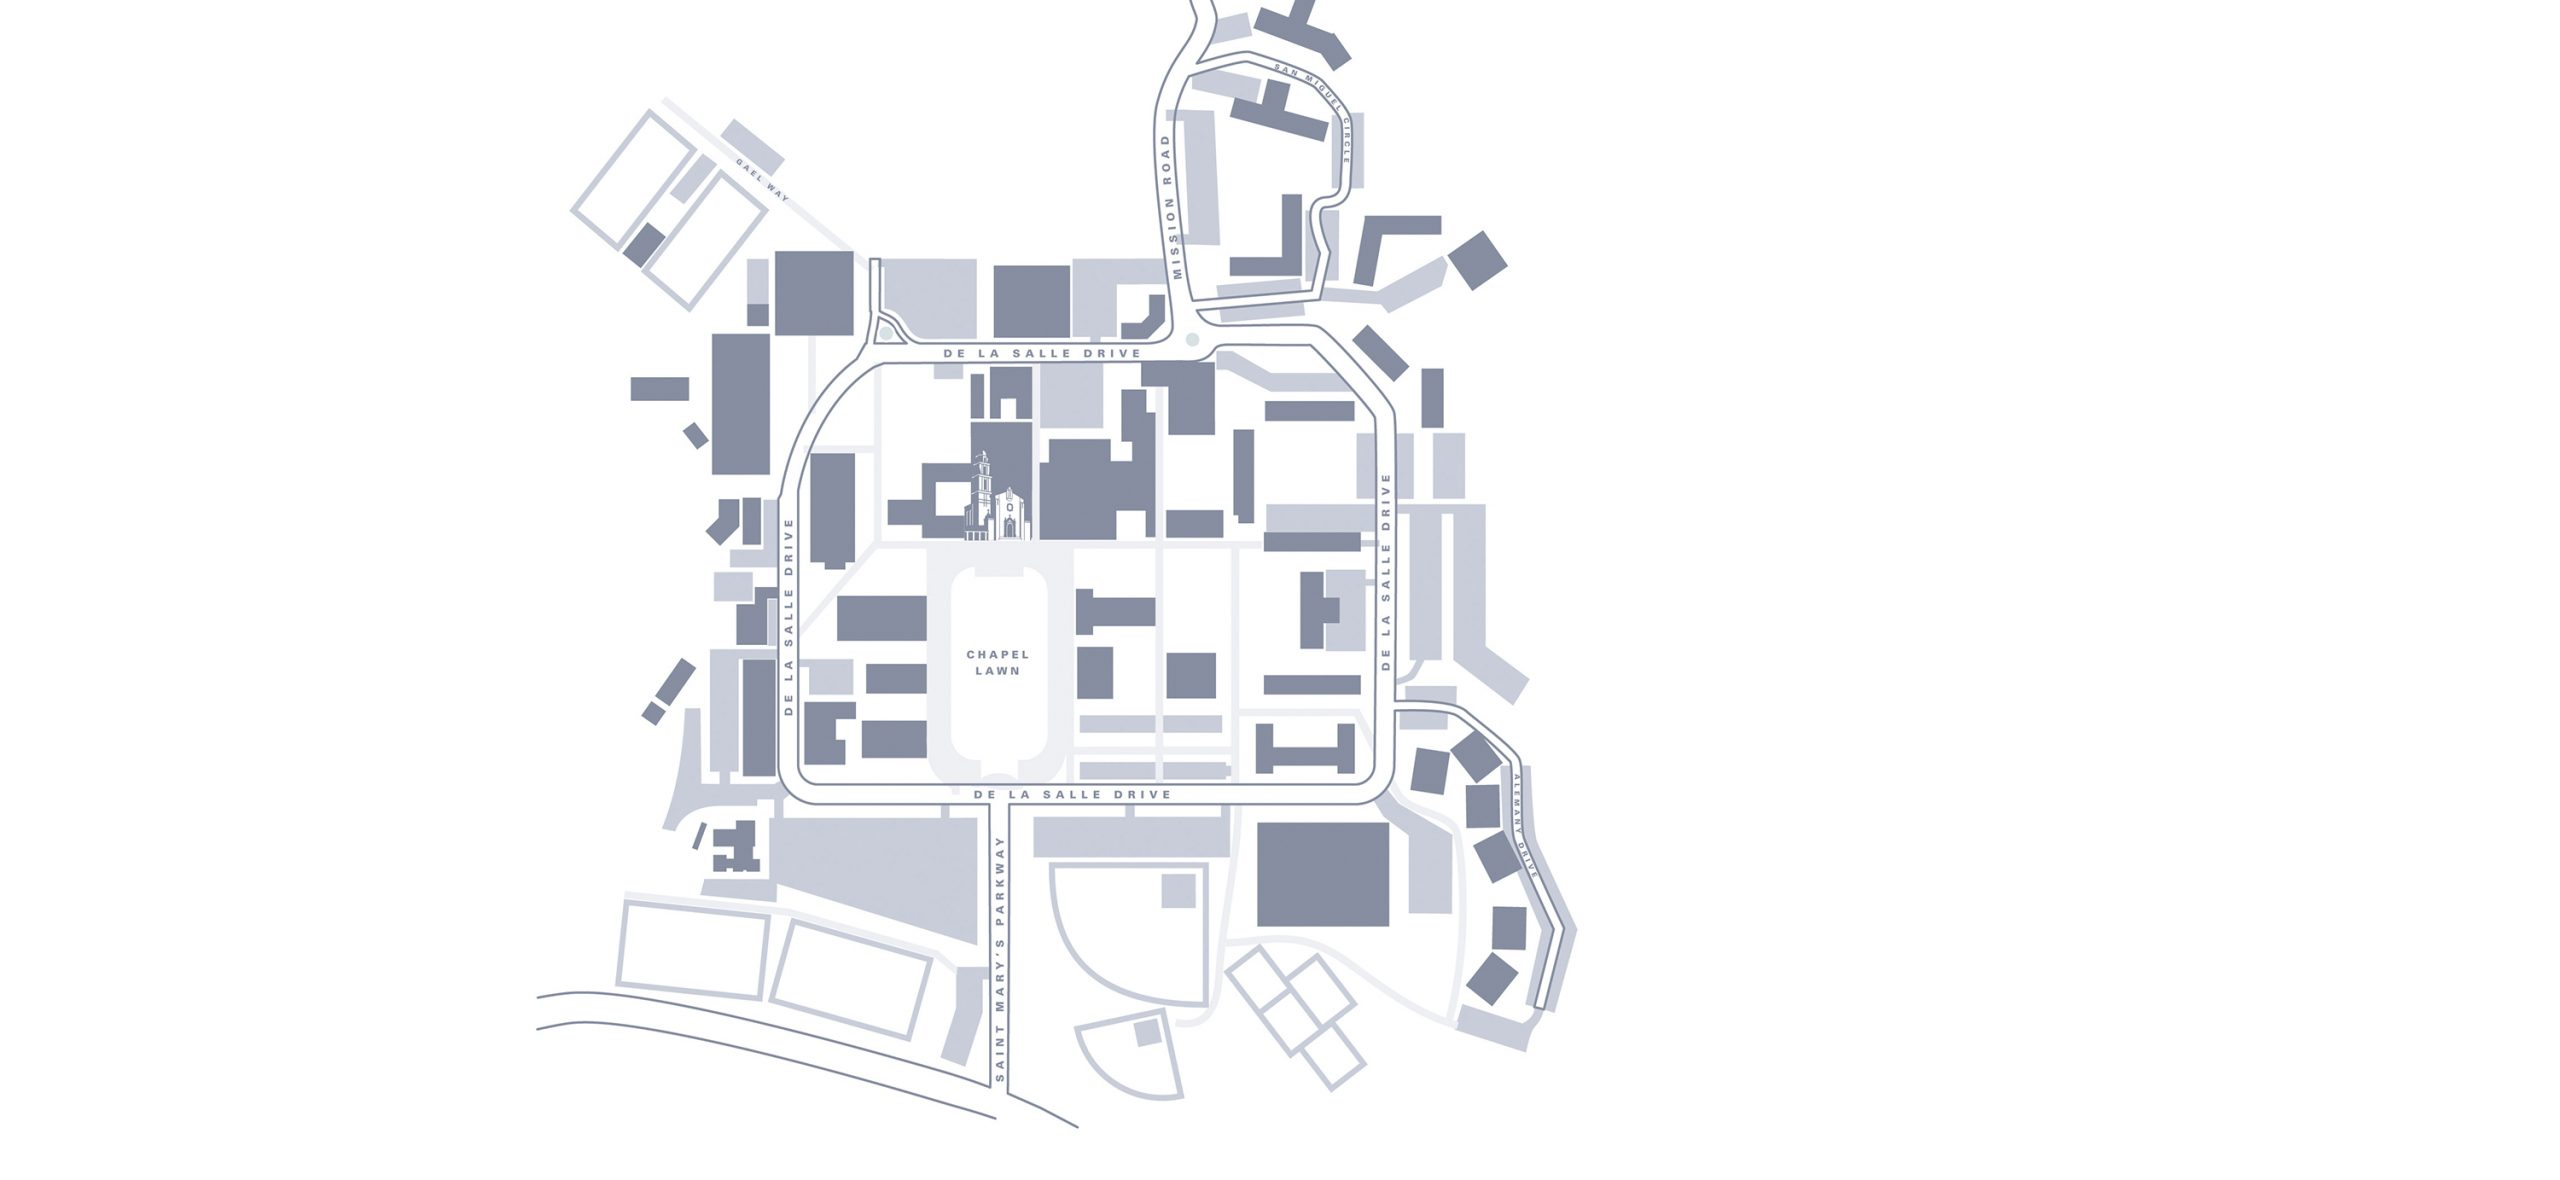 Graphic map showing Saint Mary's campus